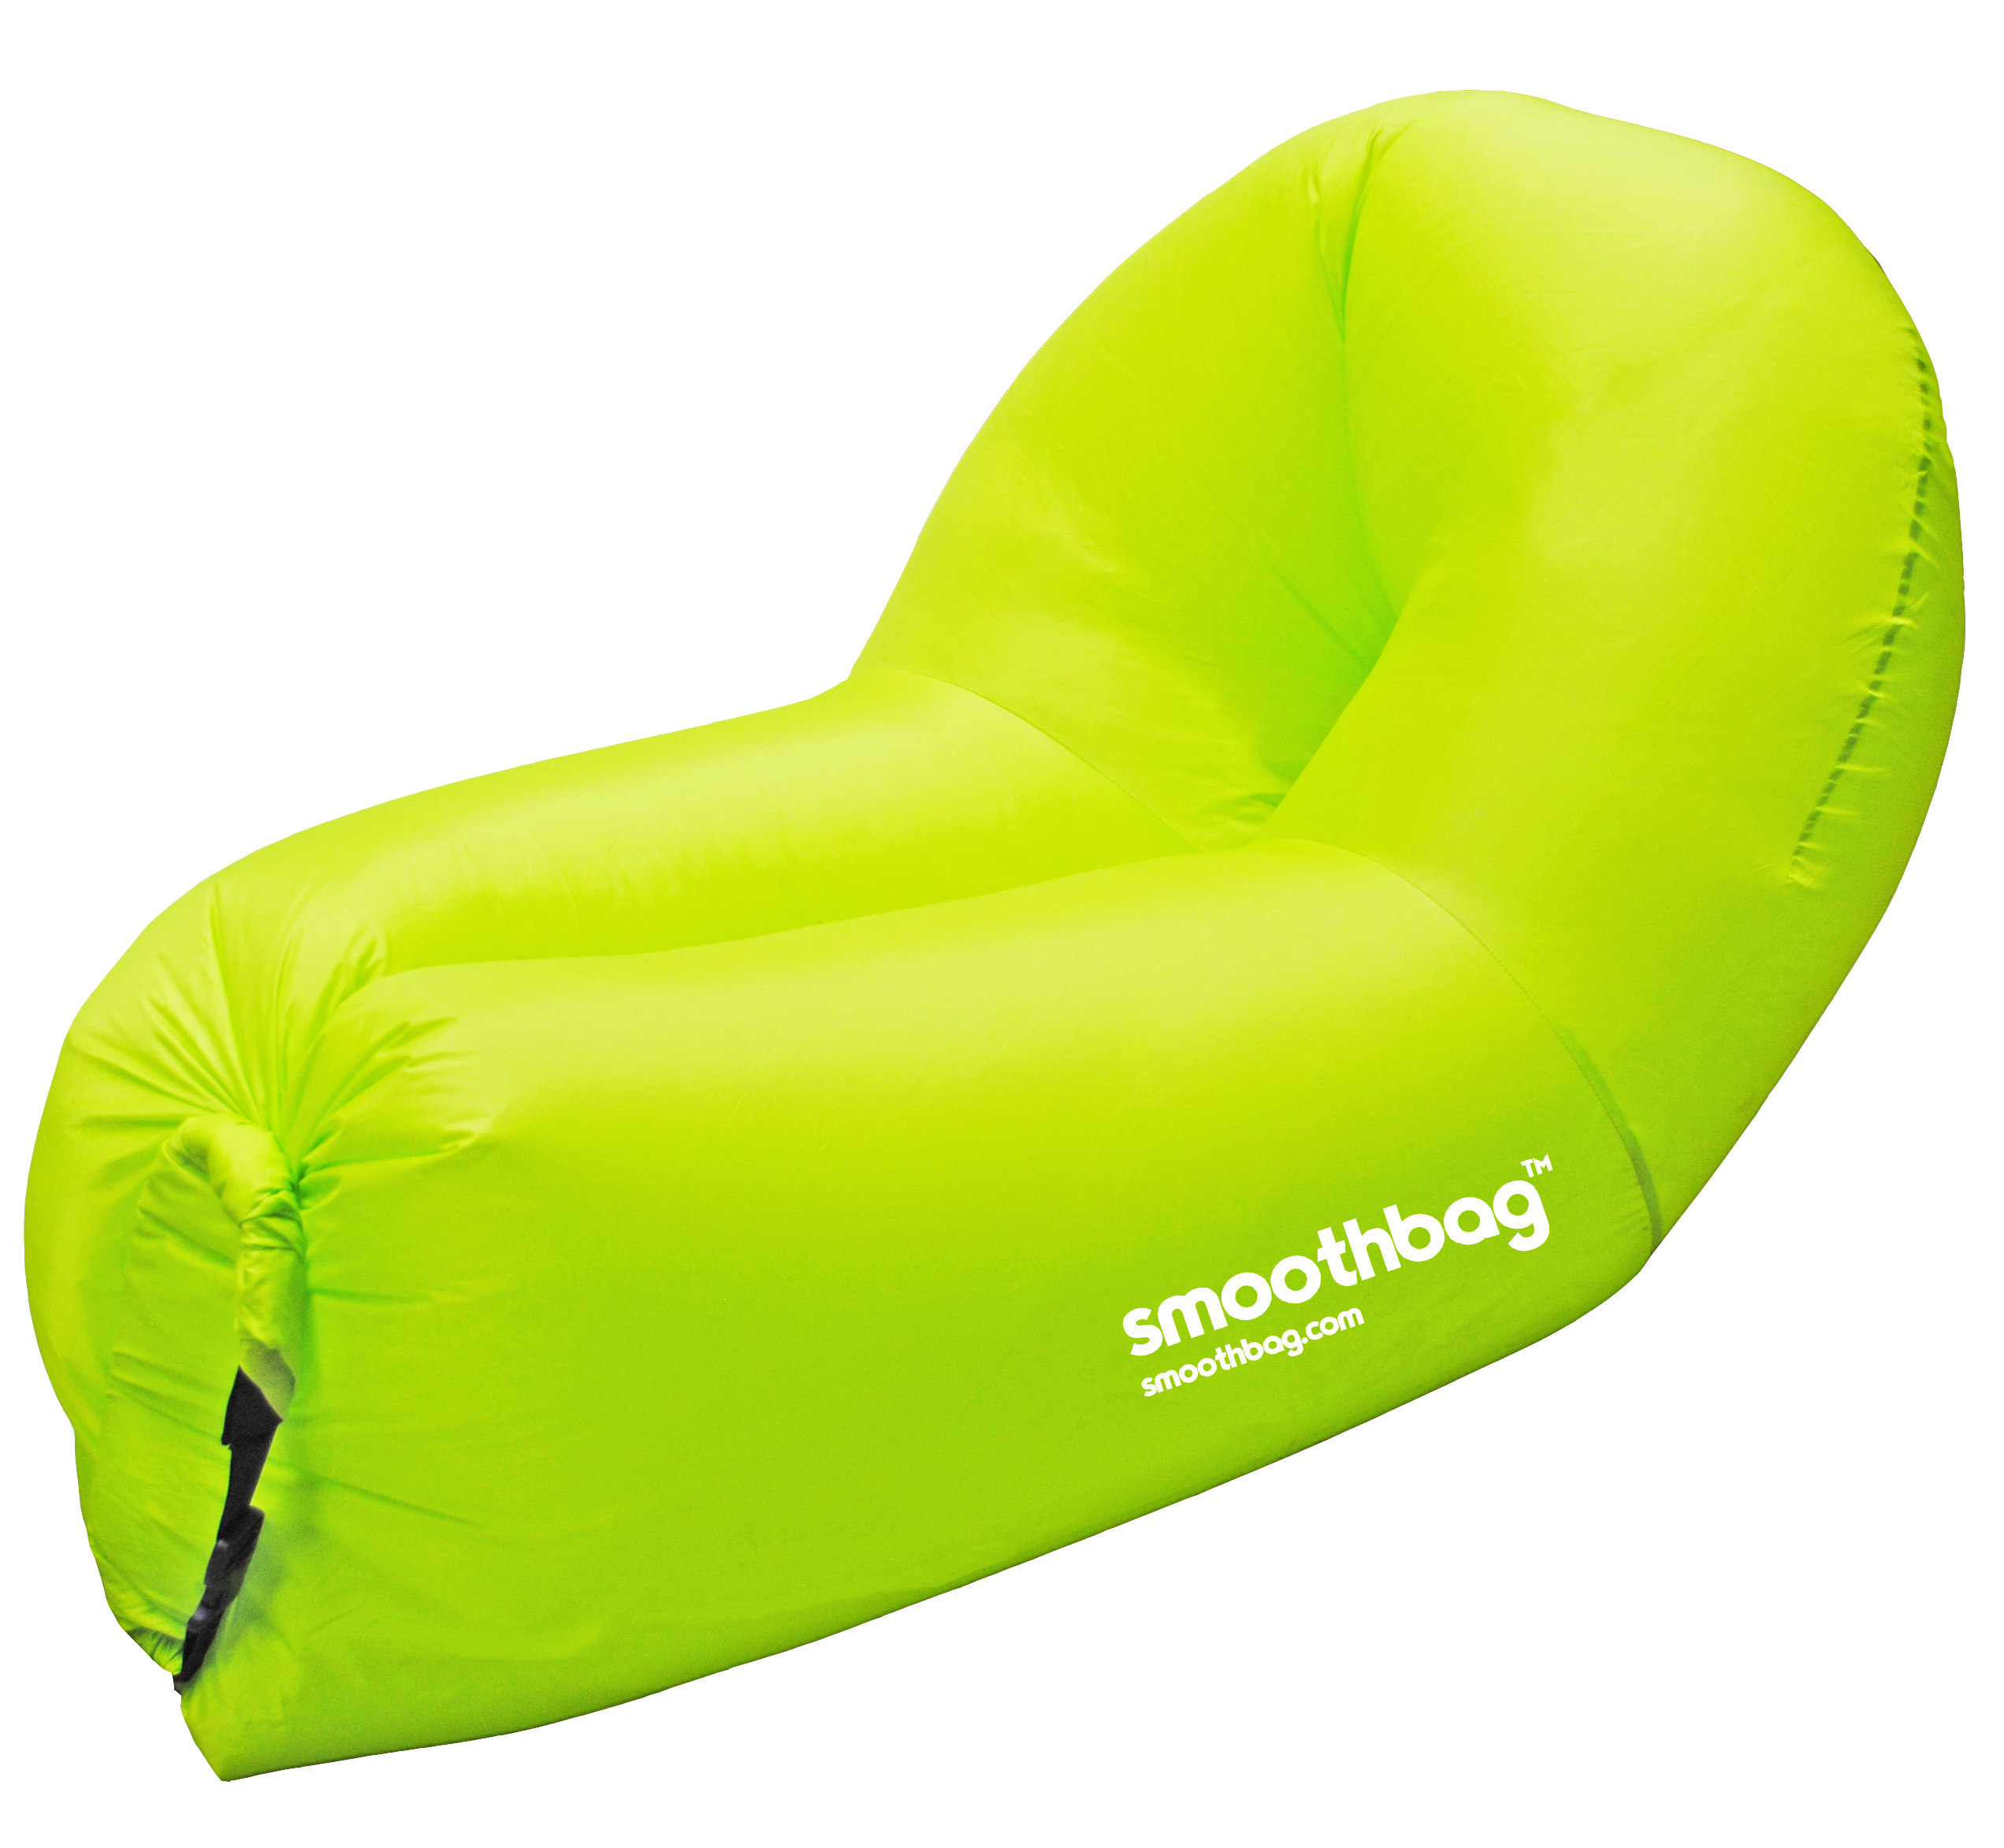 SMOOTHBAG SBPGREEN GREEN 2IN1 SOFA & CHAIR INFLATABLE LOUNGER